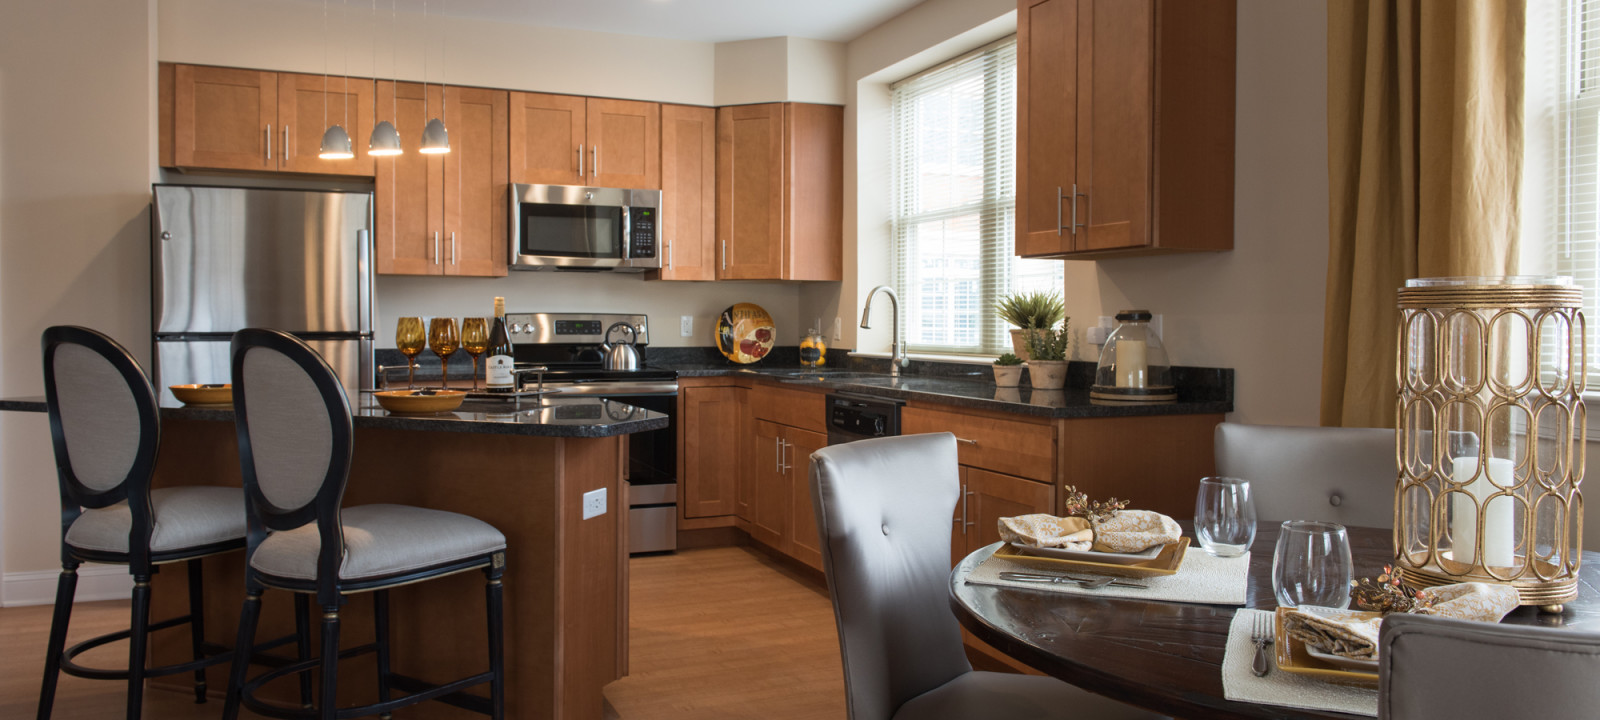 kitchen at Meridian at Eagleview apartments in Exton PA